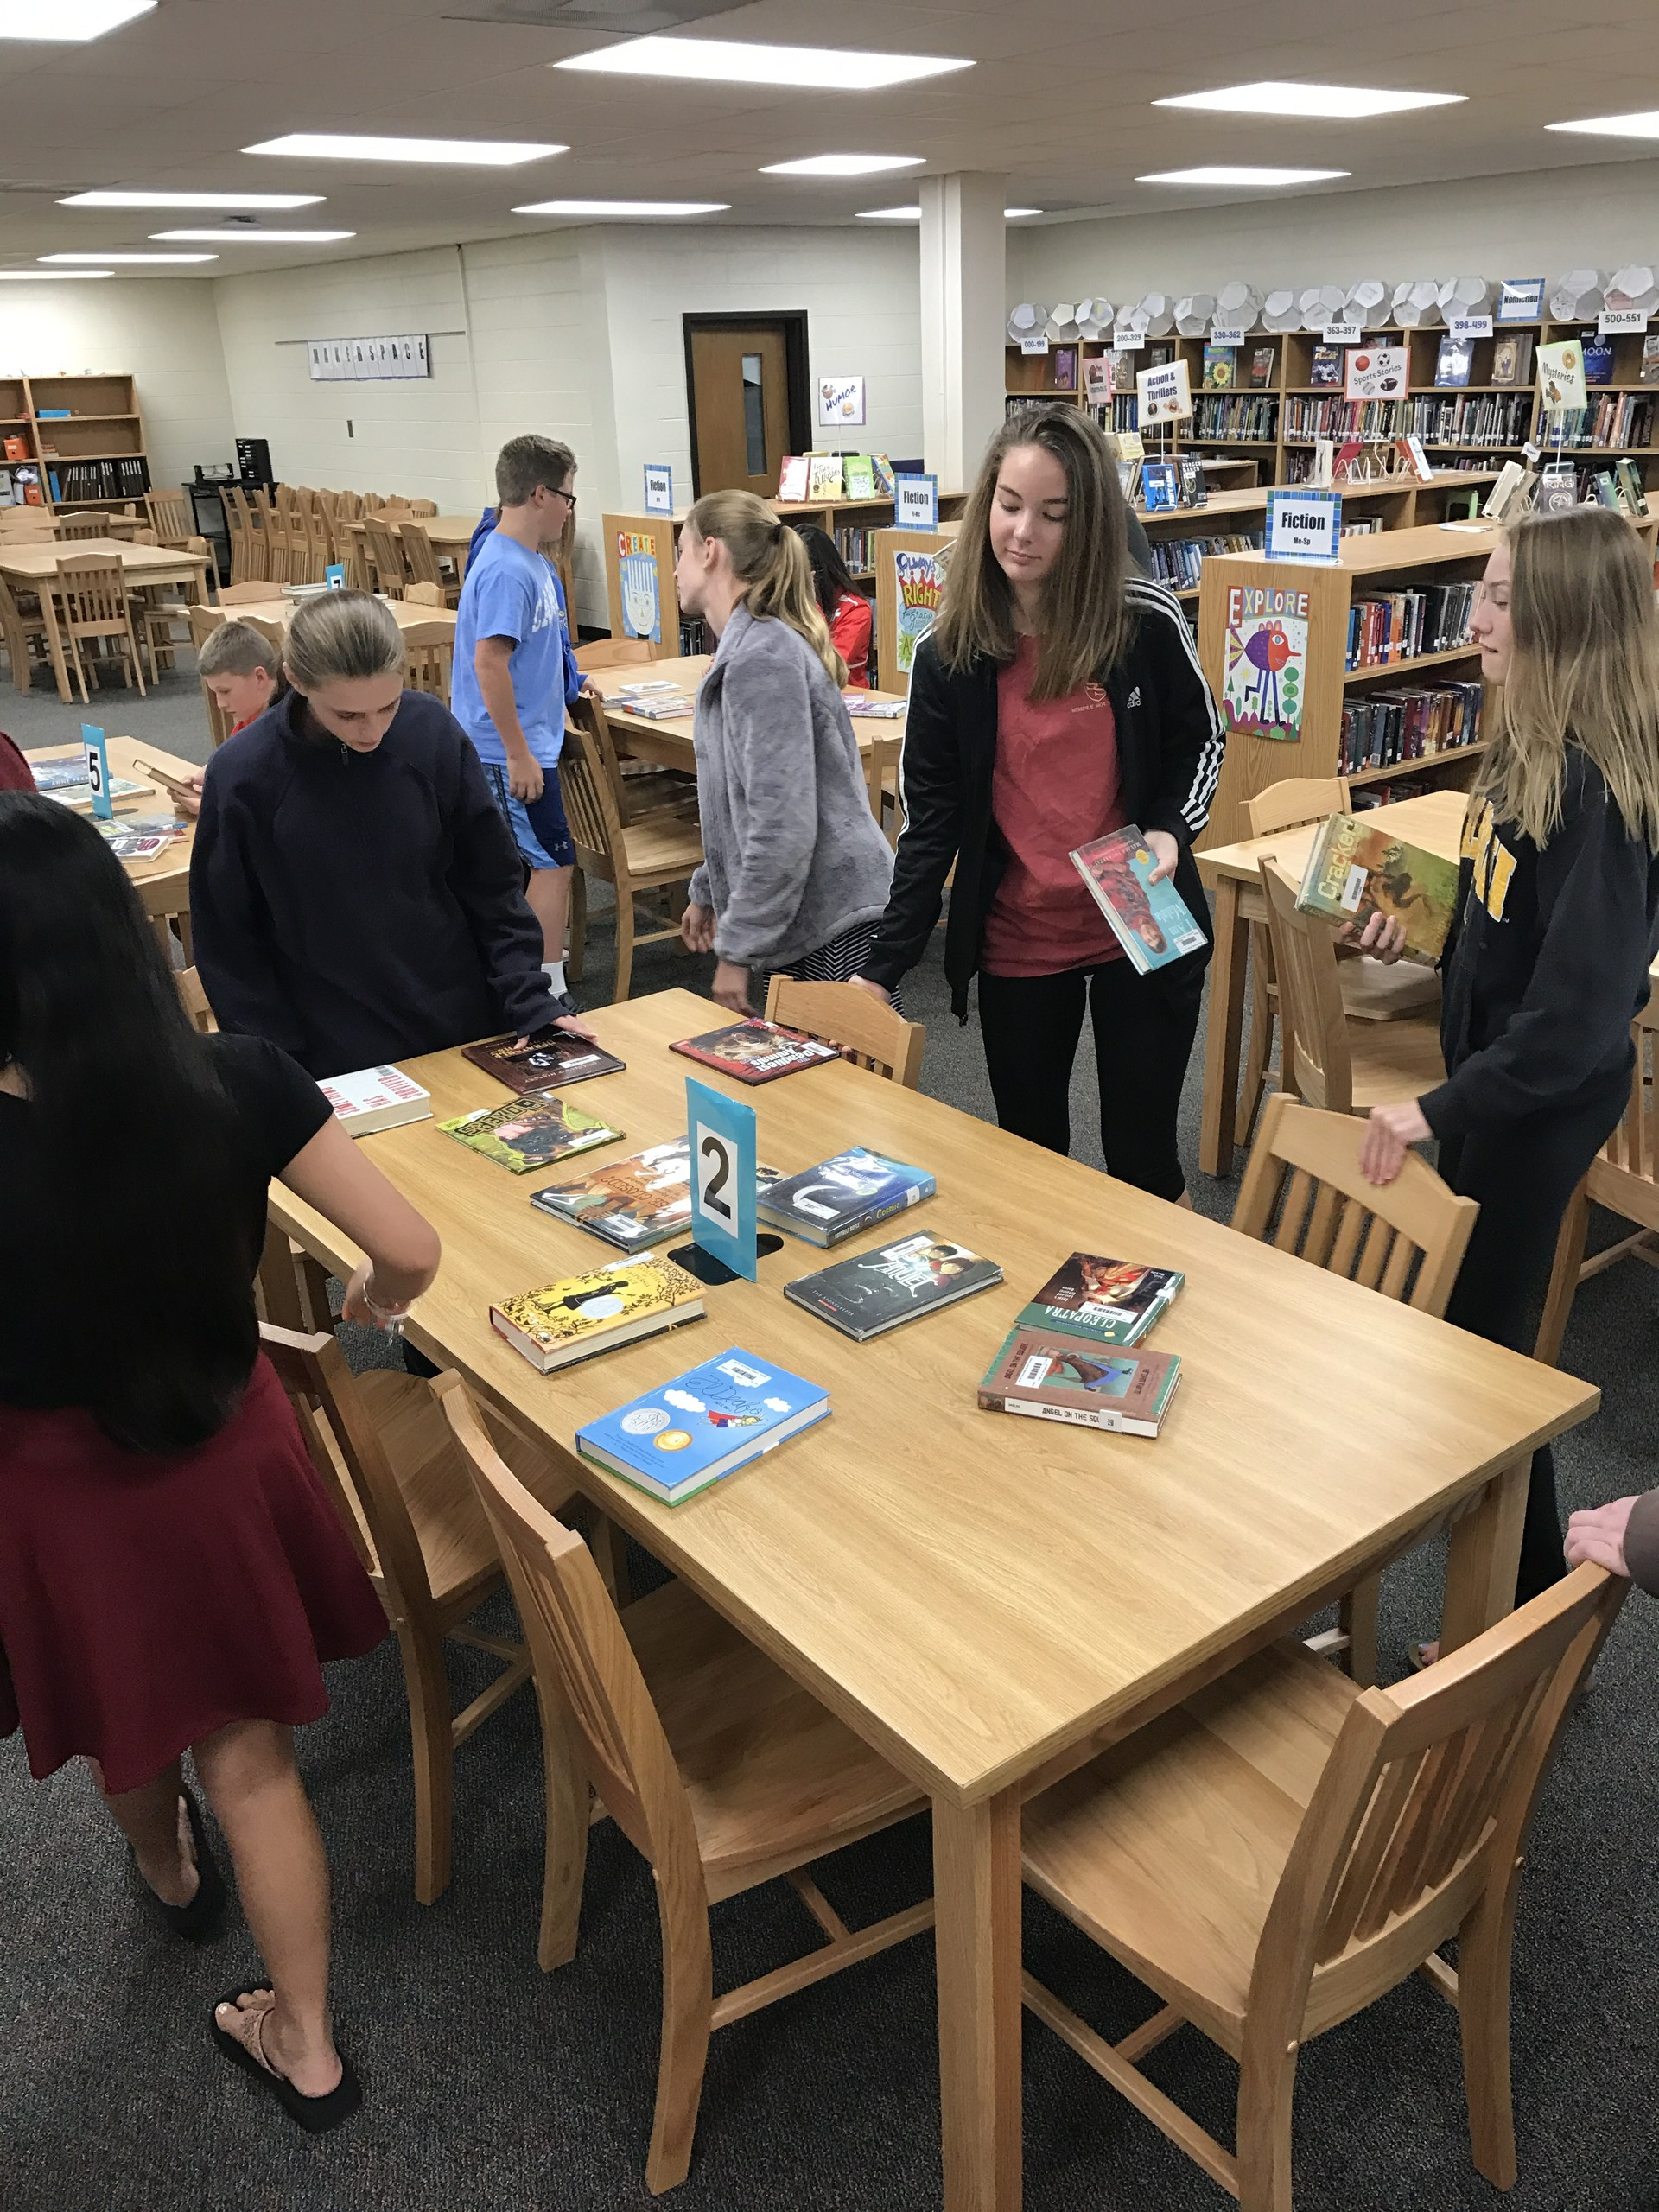 Speed dating with books at NDMS.